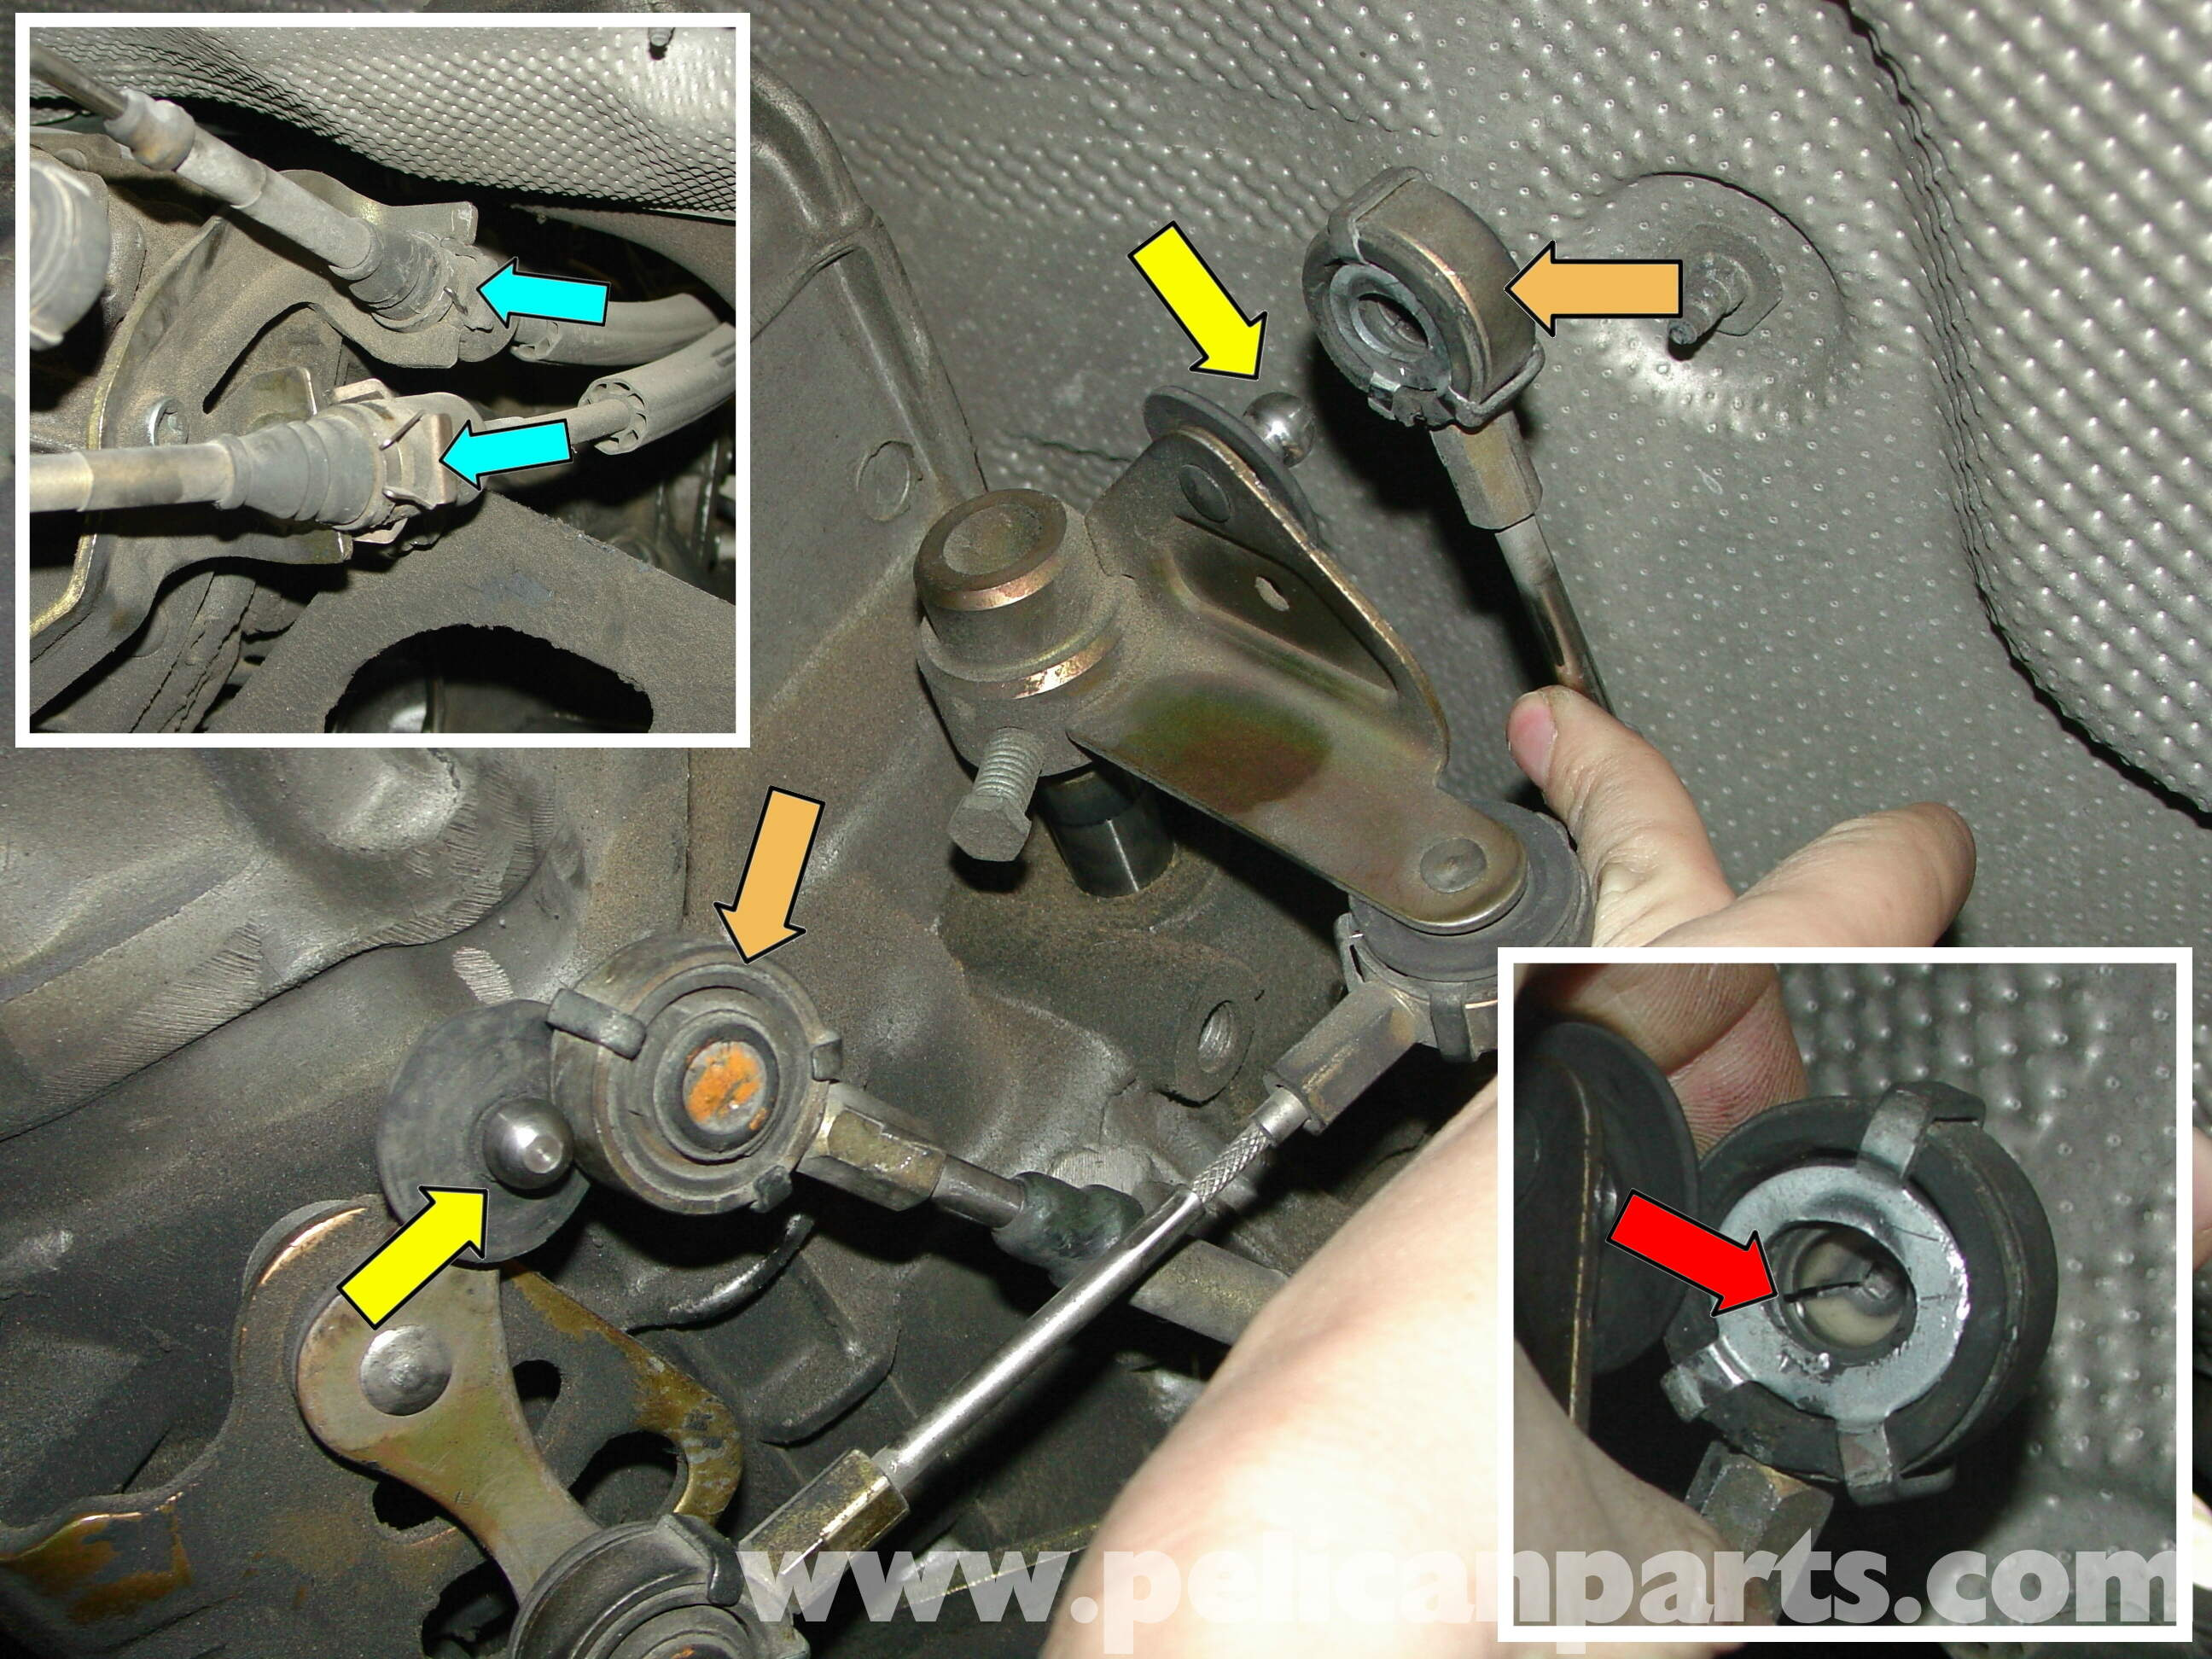 Porsche Boxster Shifter Diagram Electrical Wiring House Shift Linkage 986 Forum For Cayman Owners Rh 986forum Com Convertible Top